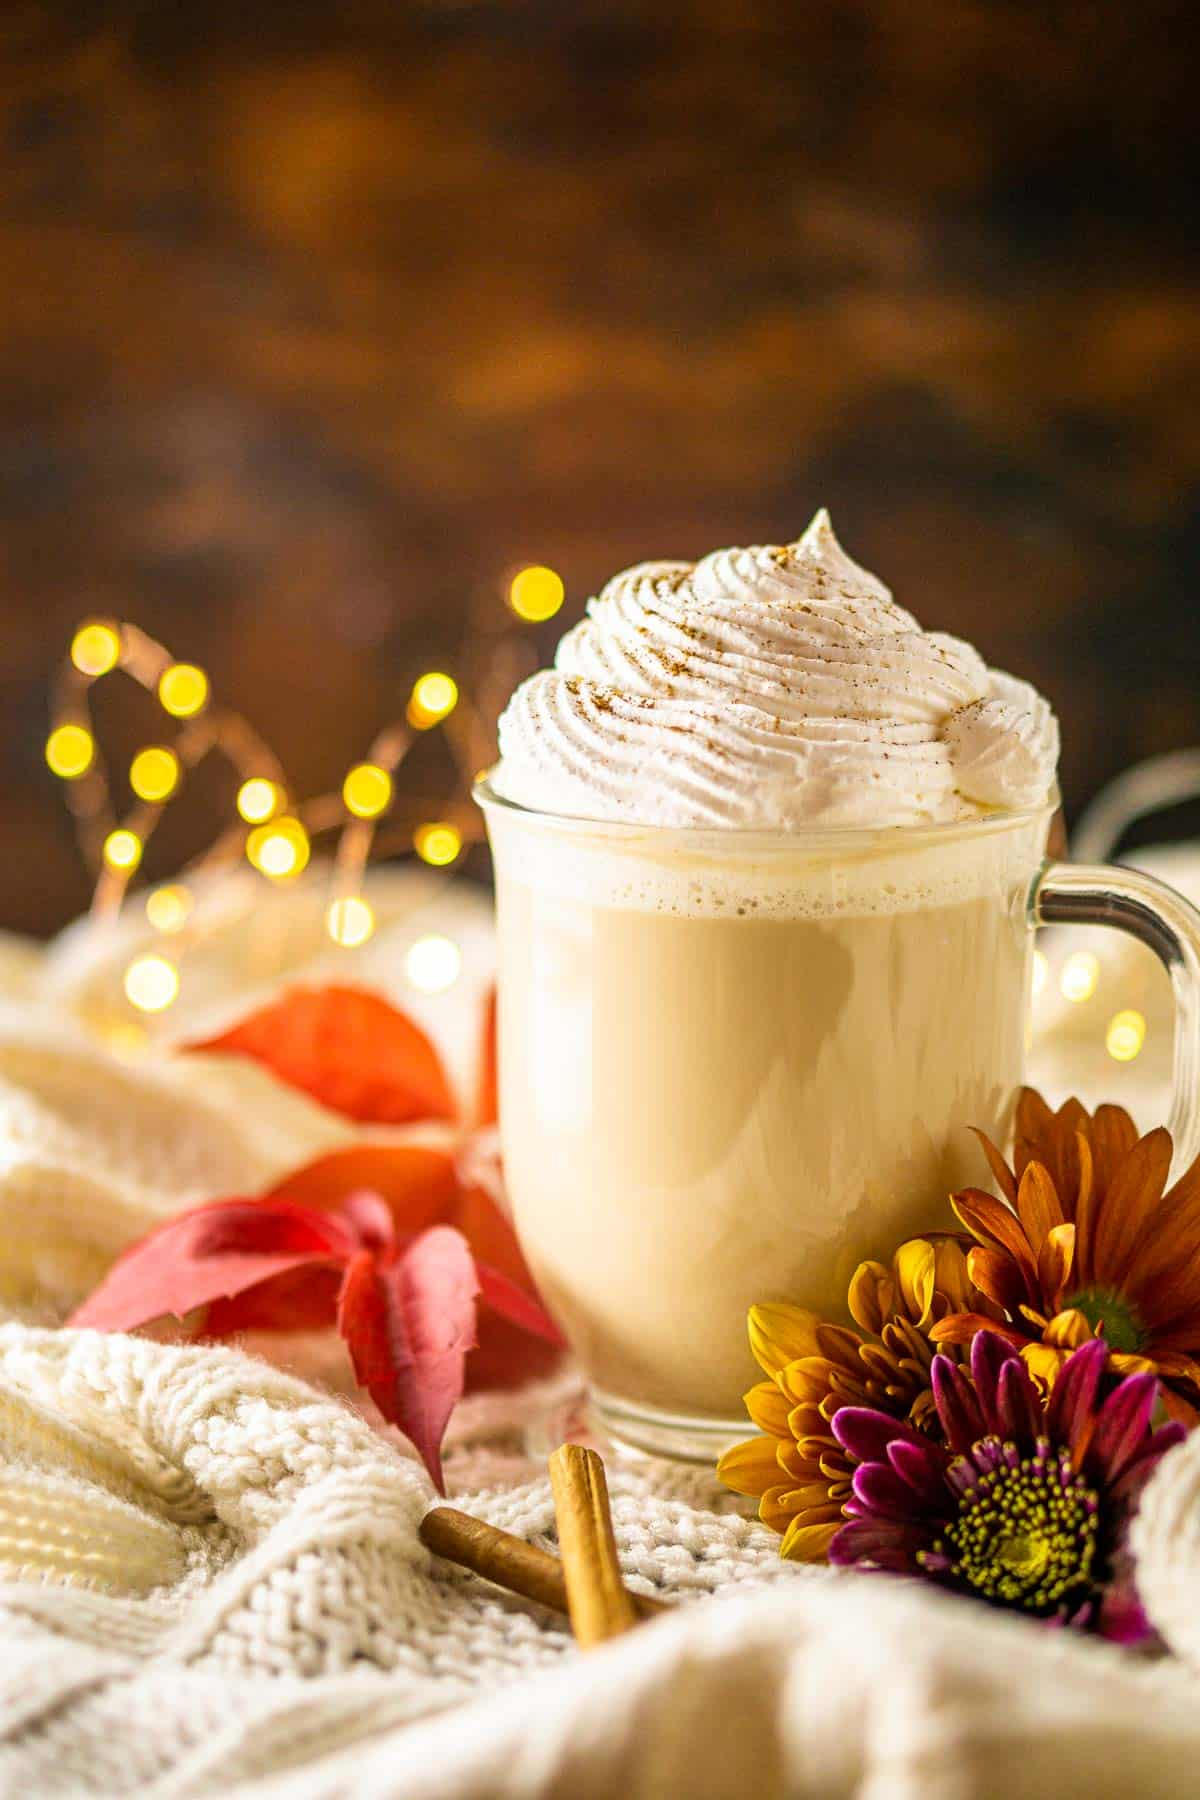 A mug of maple latte with whipped cream on top and lights in the background.